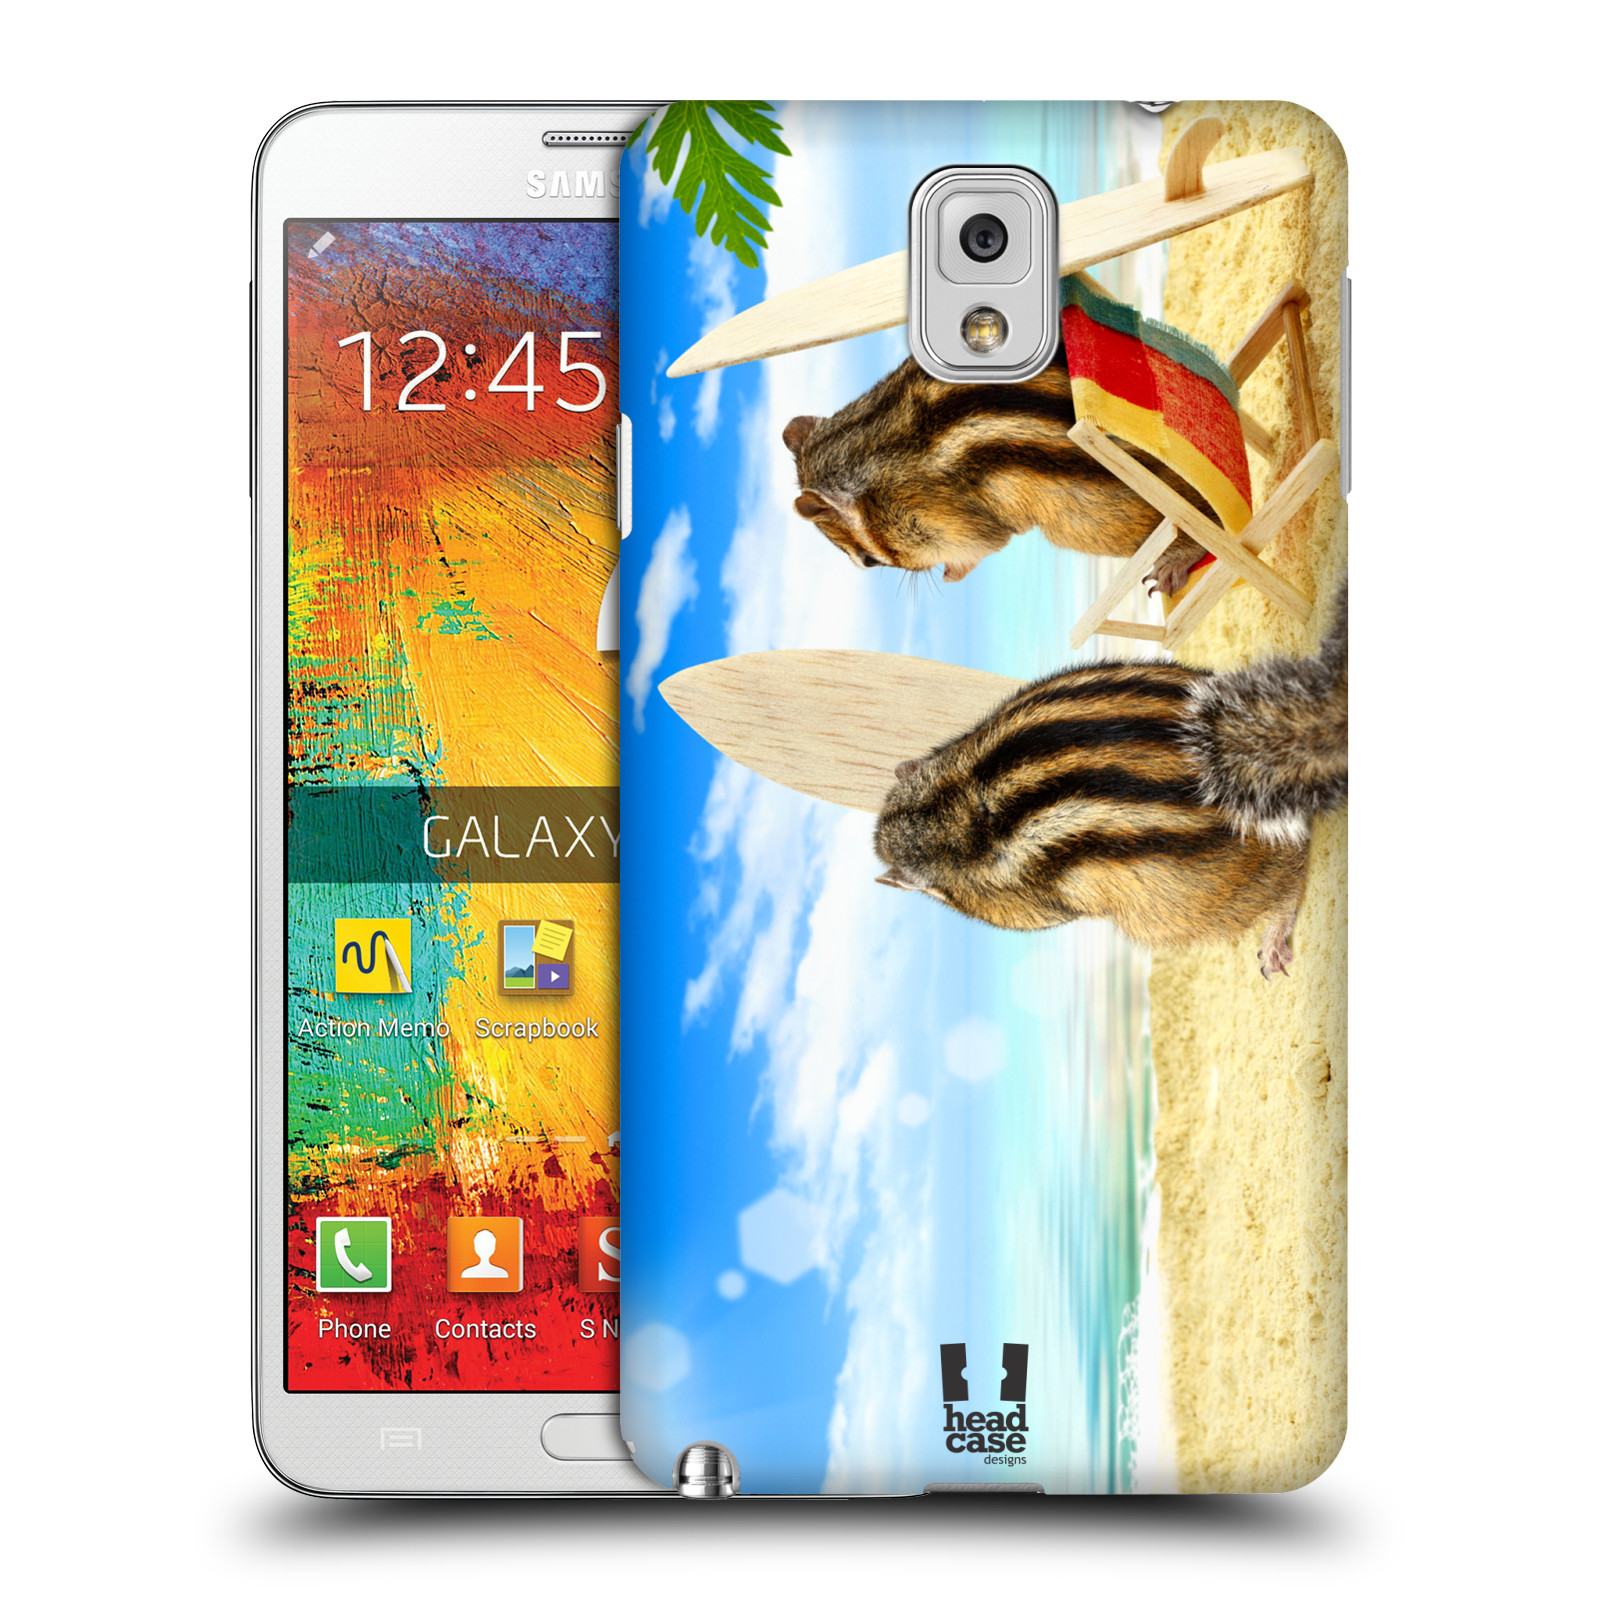 Case Design personalised bling phone cases : ... Phones u0026 Accessories u0026gt; Cell Phone Accessories u0026gt; Cases, Covers u0026 Skins